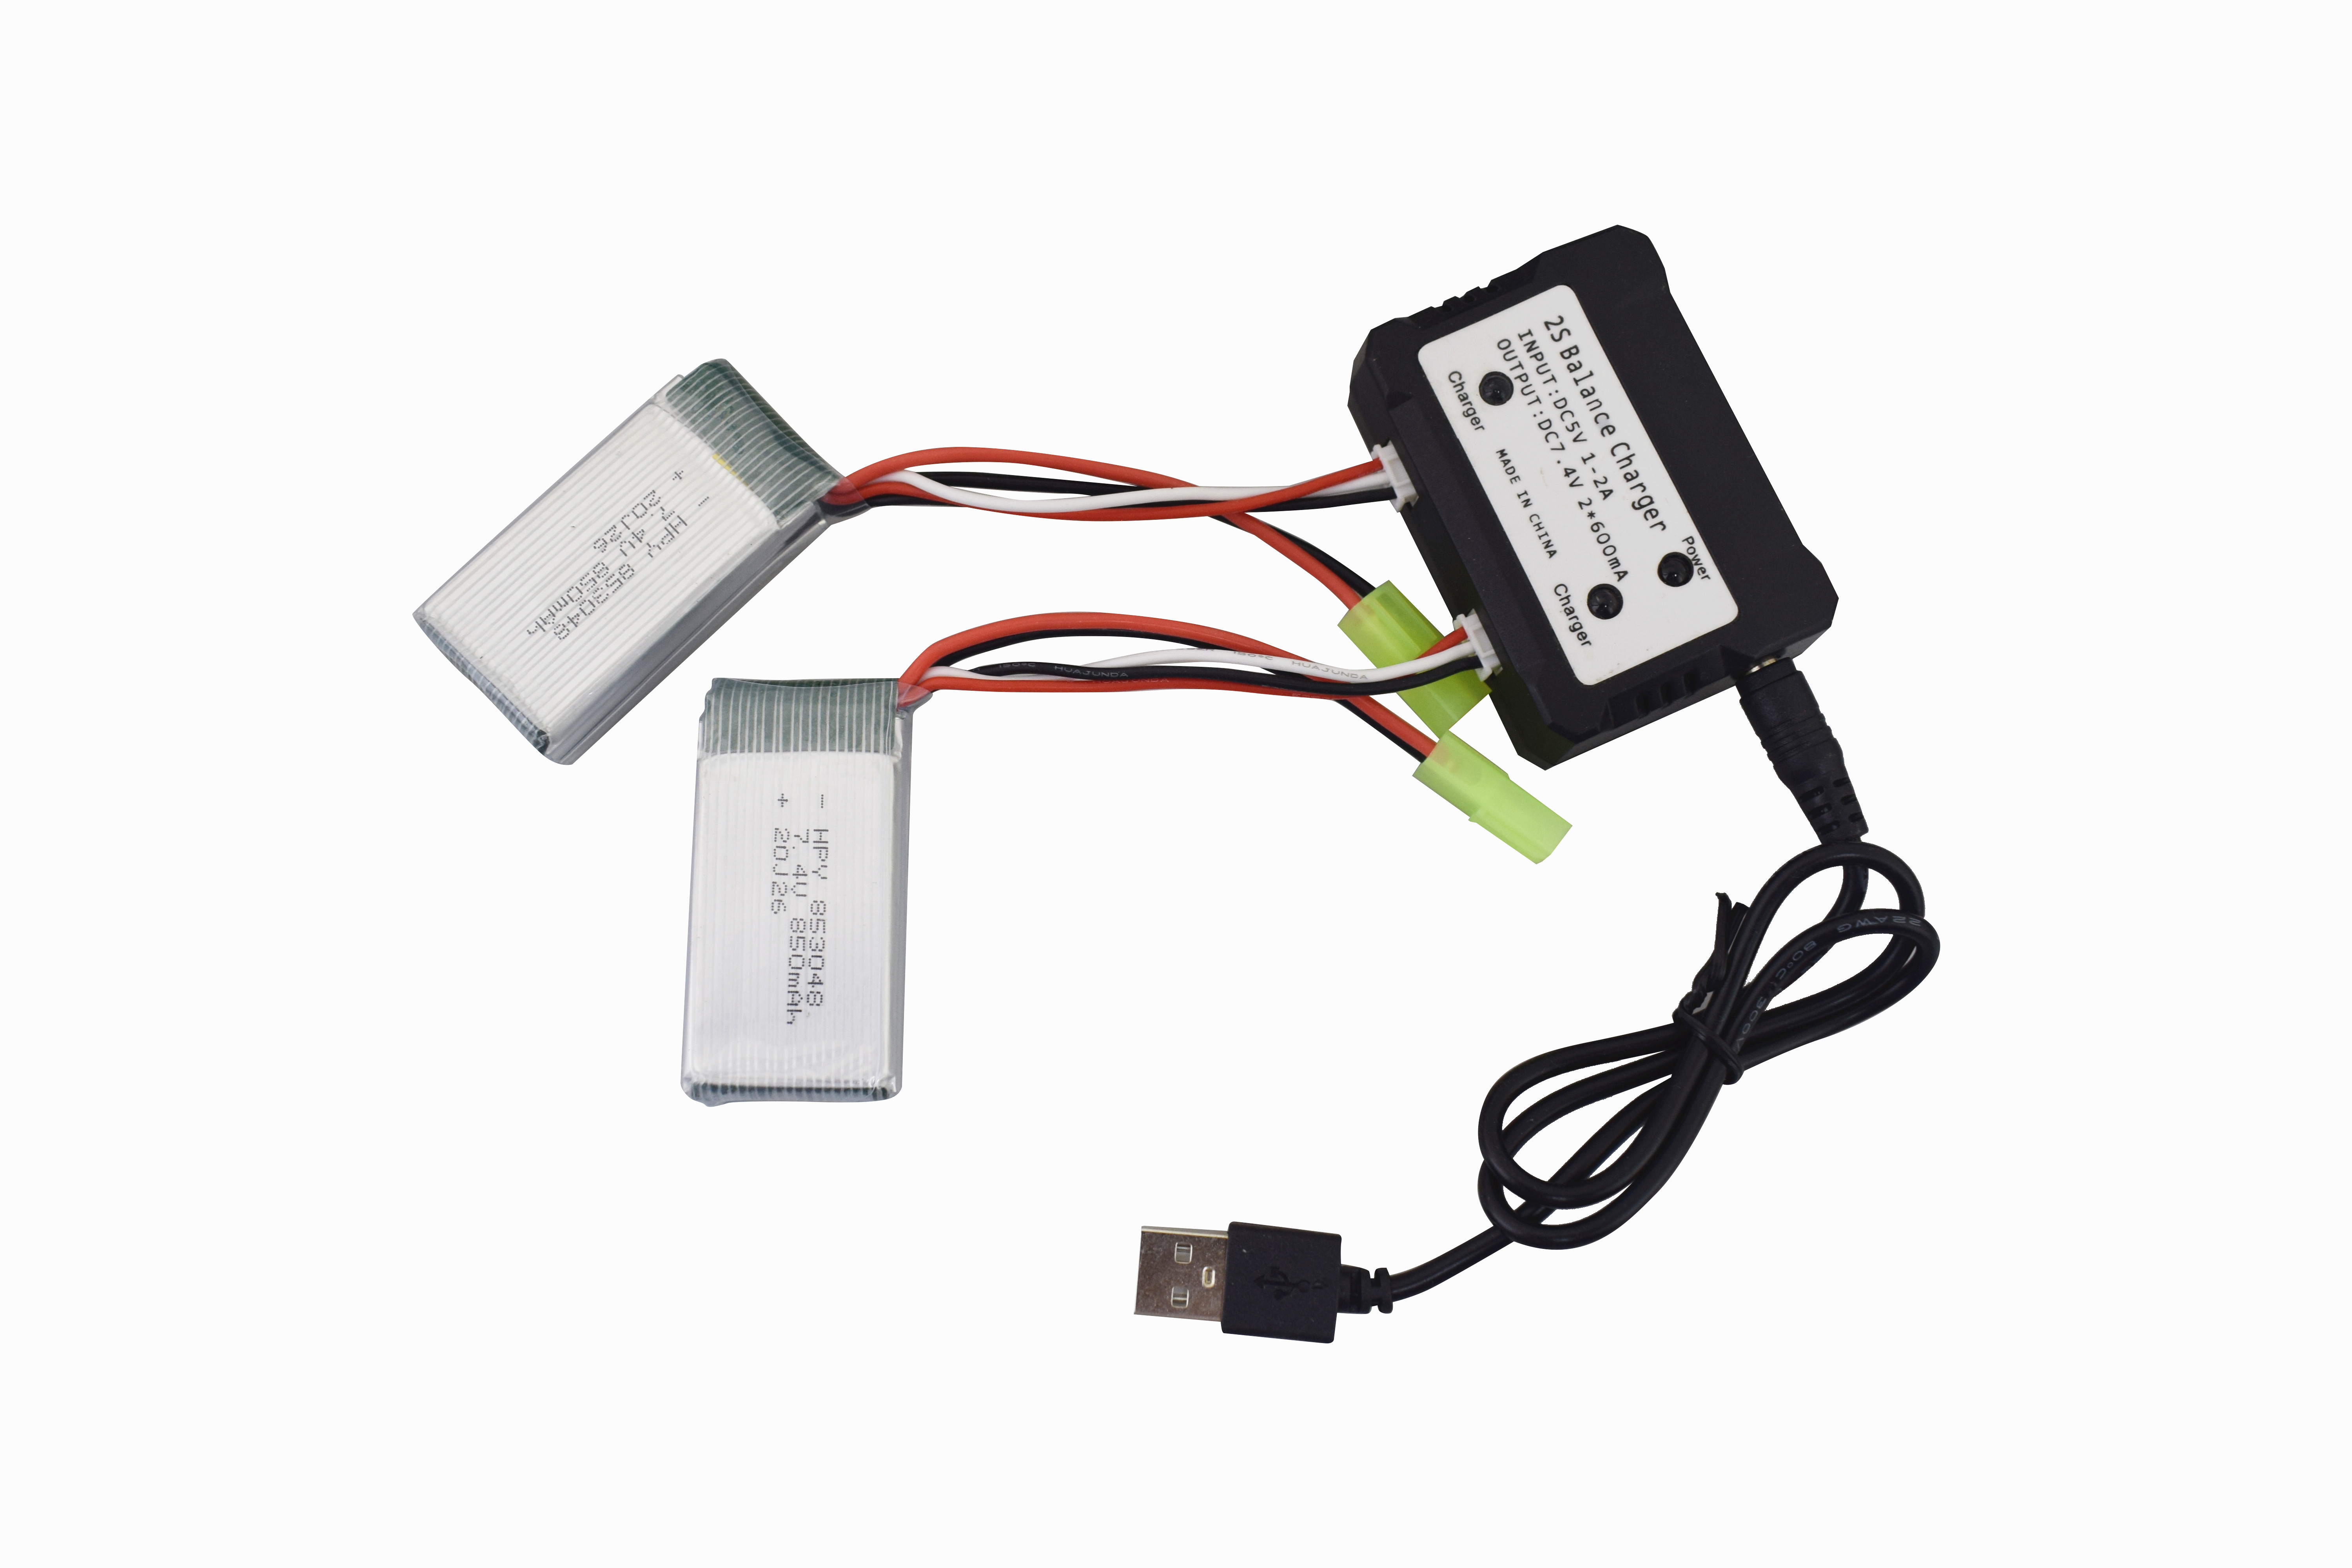 7.4V 850mah Lithium Battery for 9300 9301E 9302E 9303E 9034E 9305E 2.4G 1:18 Full Scale Four Wheel Drive High Speed Off Road RC Car  2*battery+2in 1 charger